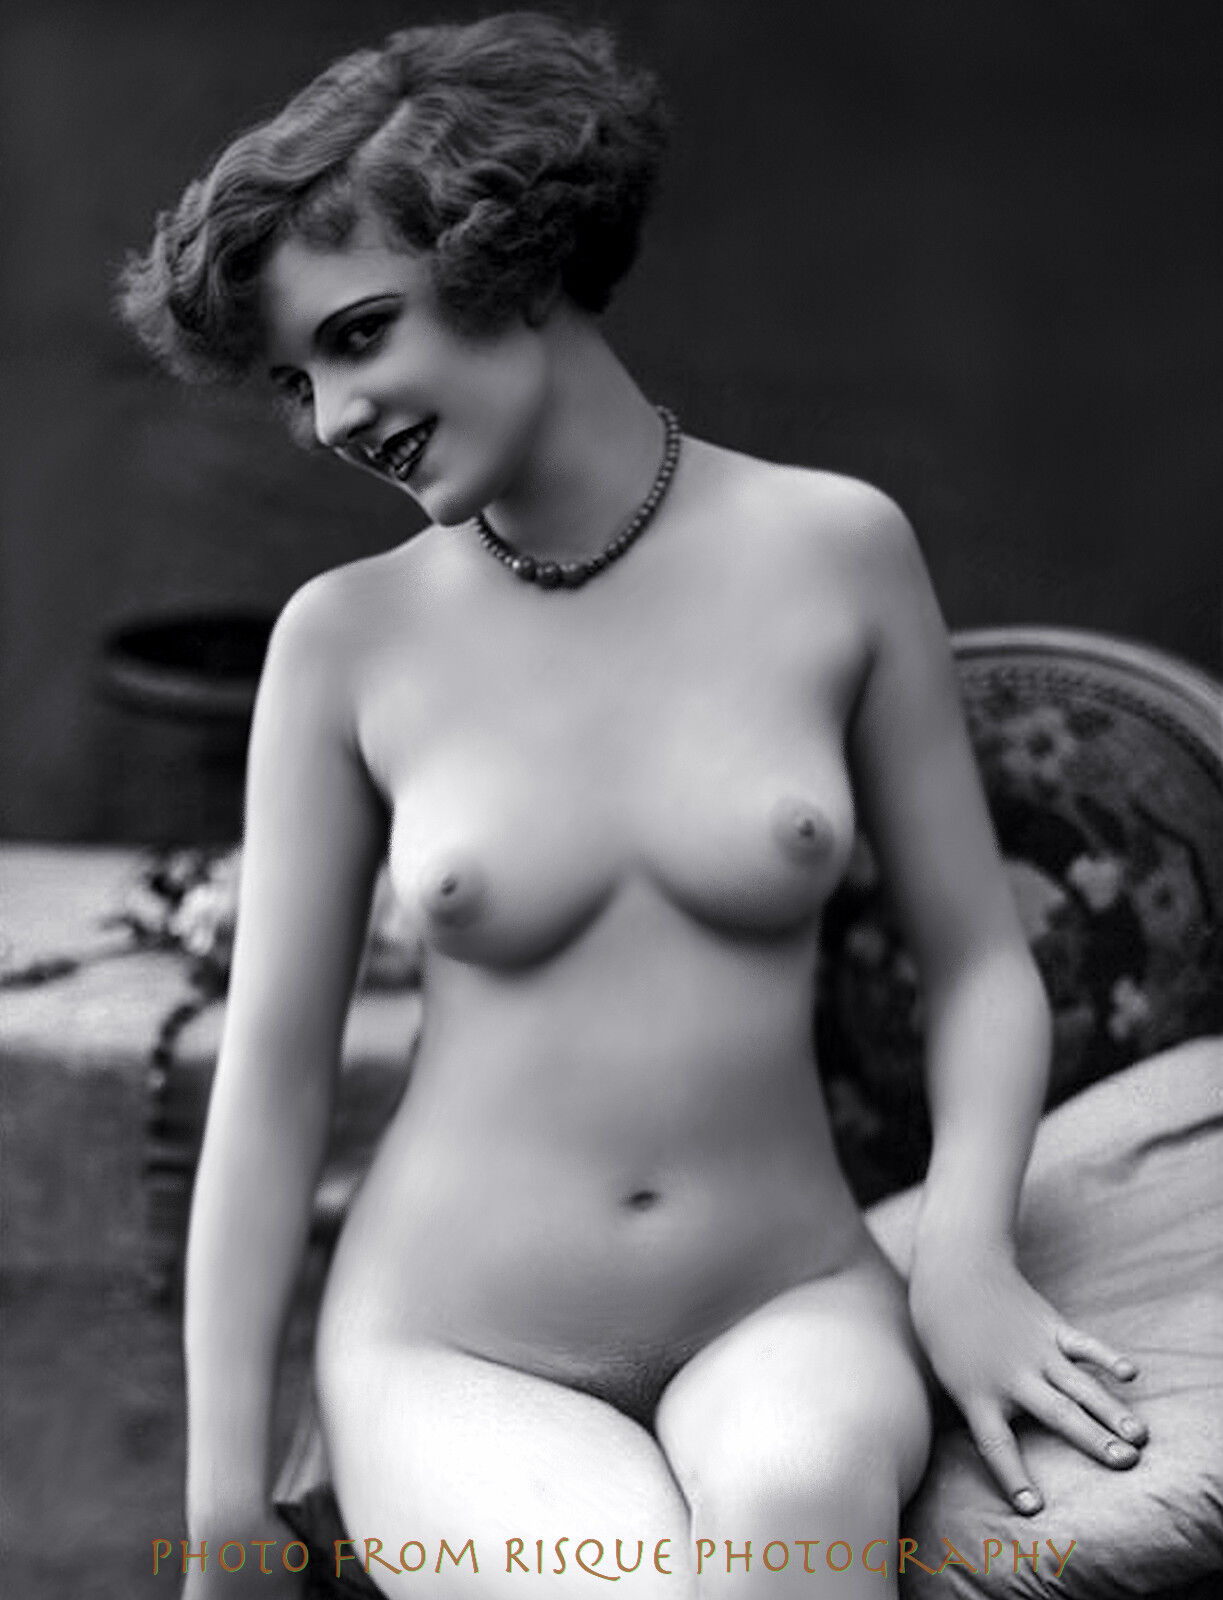 Vintage nudes models, arse ass bum butt community type white